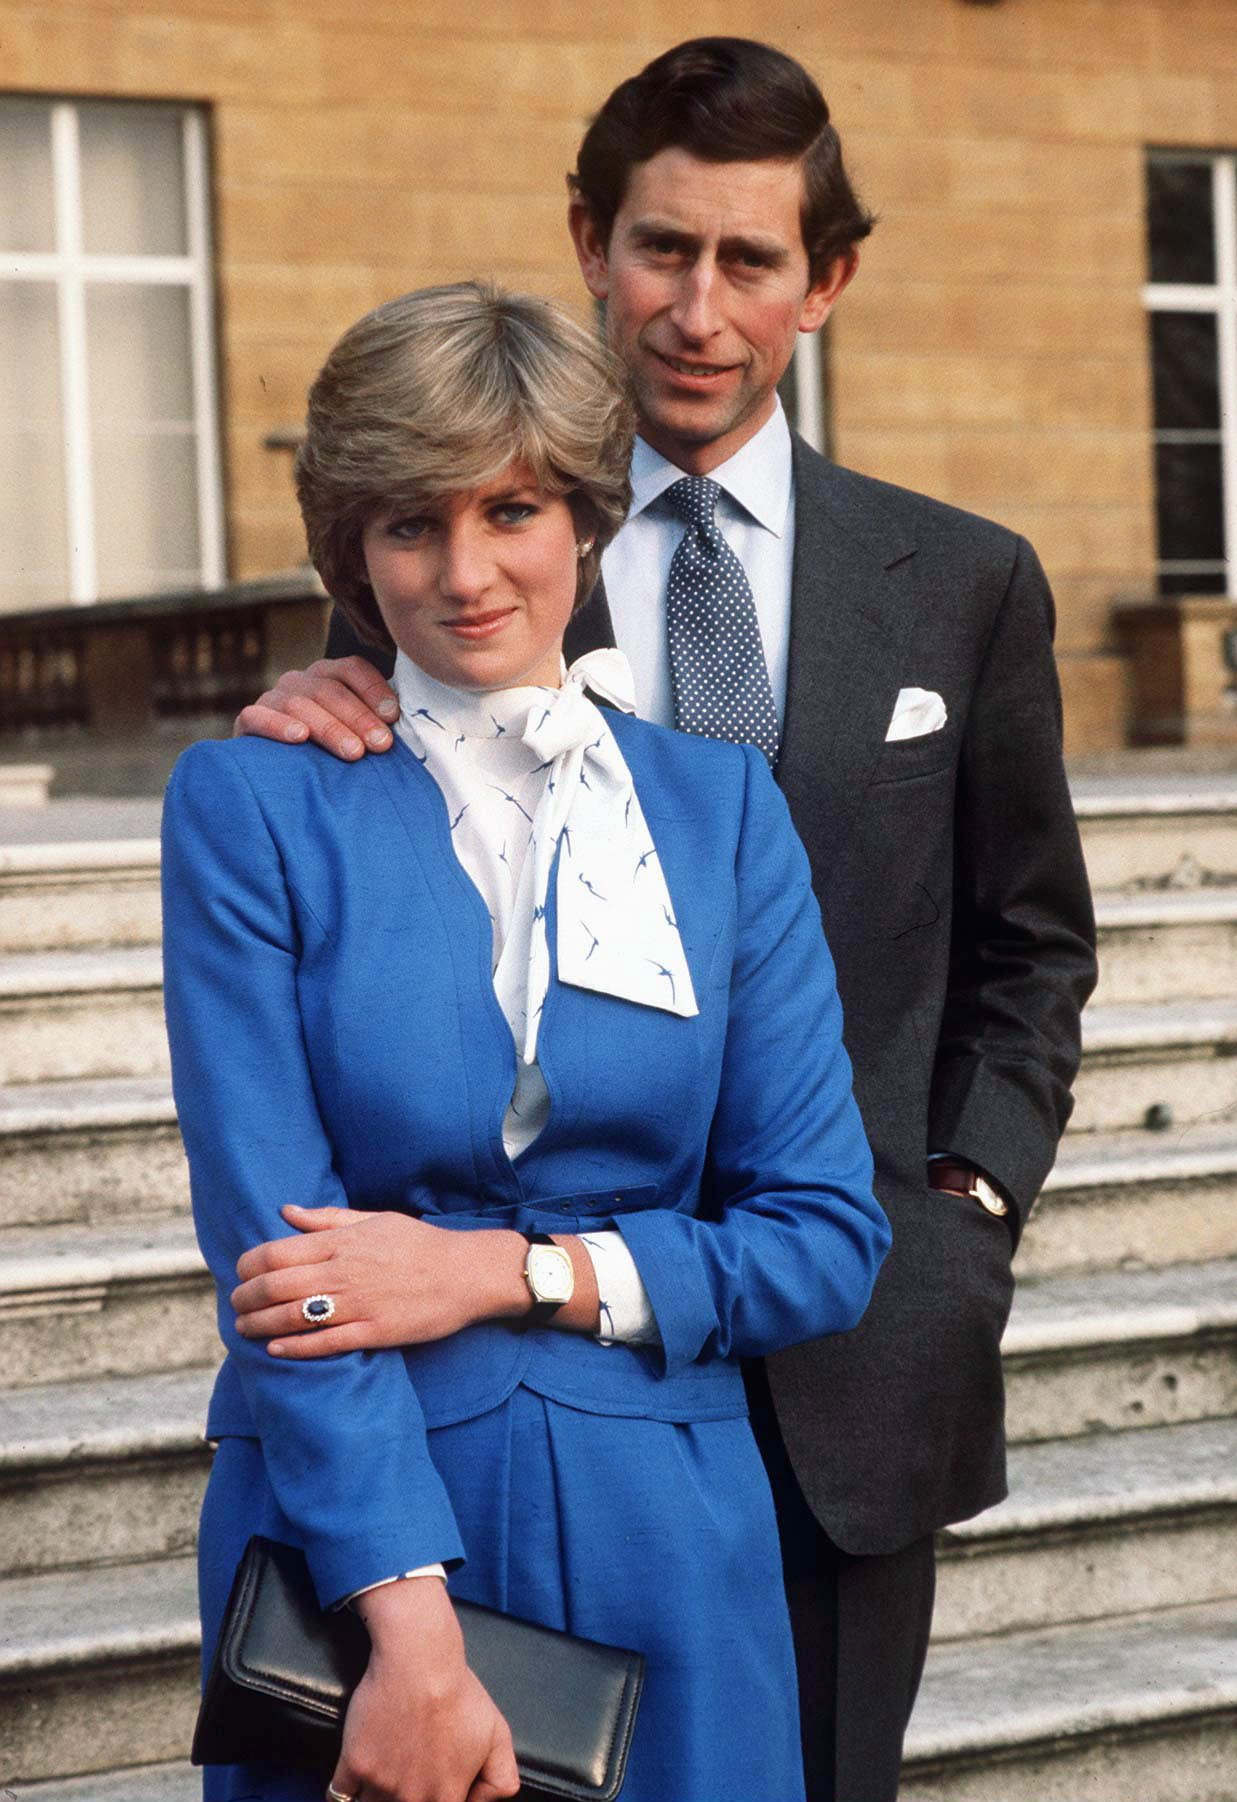 Lady Diana Spencer and Prince Charles pose during their engagement announcement day on February 24, 1981. | Source: Getty Images